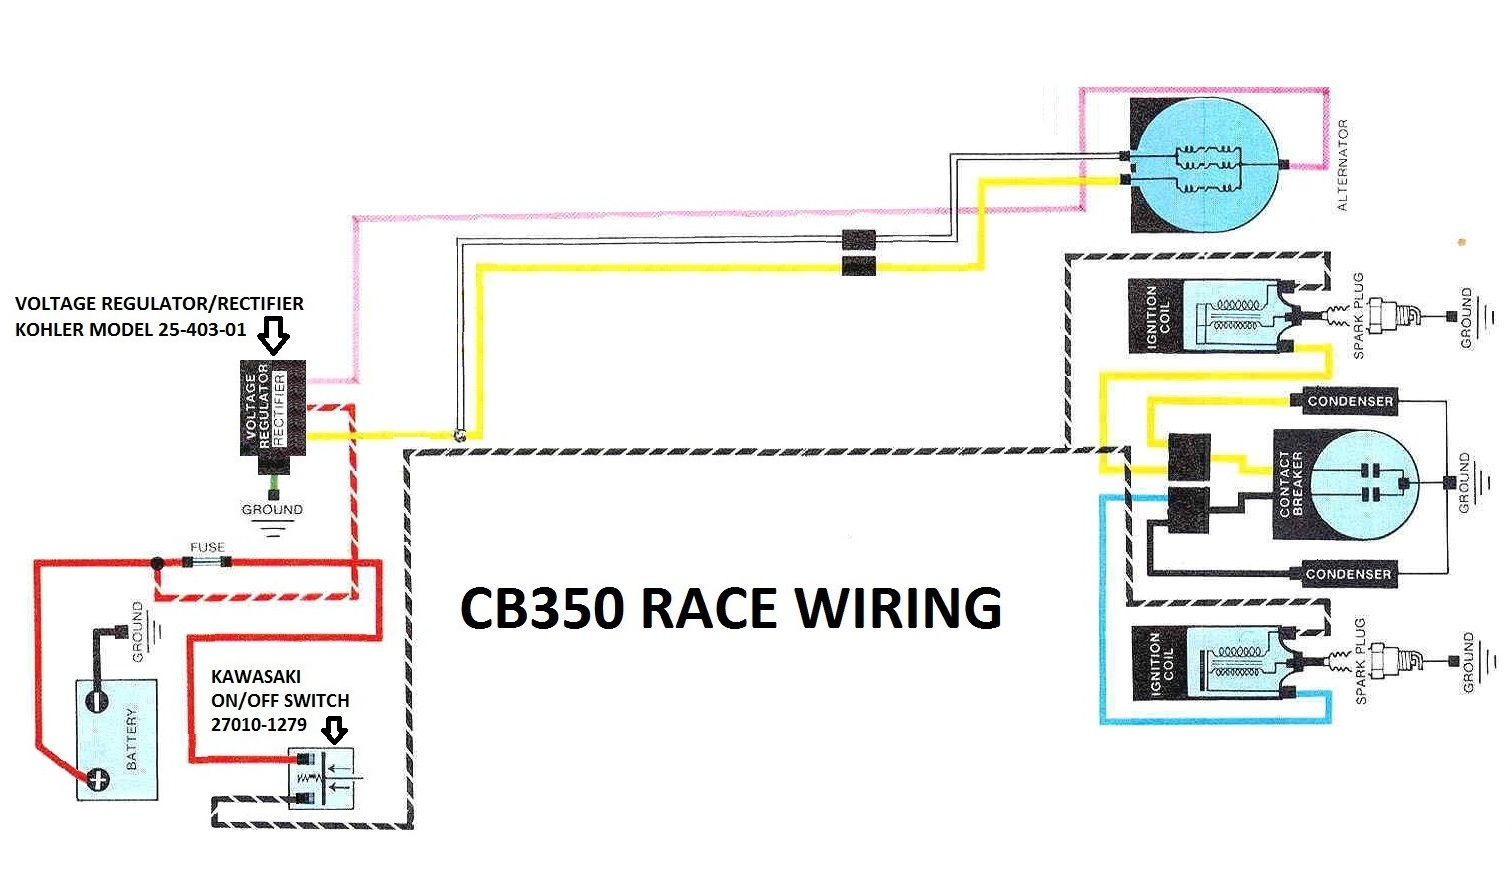 Cb 350 Wiring Diagram Reinvent Your Honda Cb750 Schematic Cb350 Race A Question About Voltage Regulator Rh Hondatwins Net 1978 Cb750k